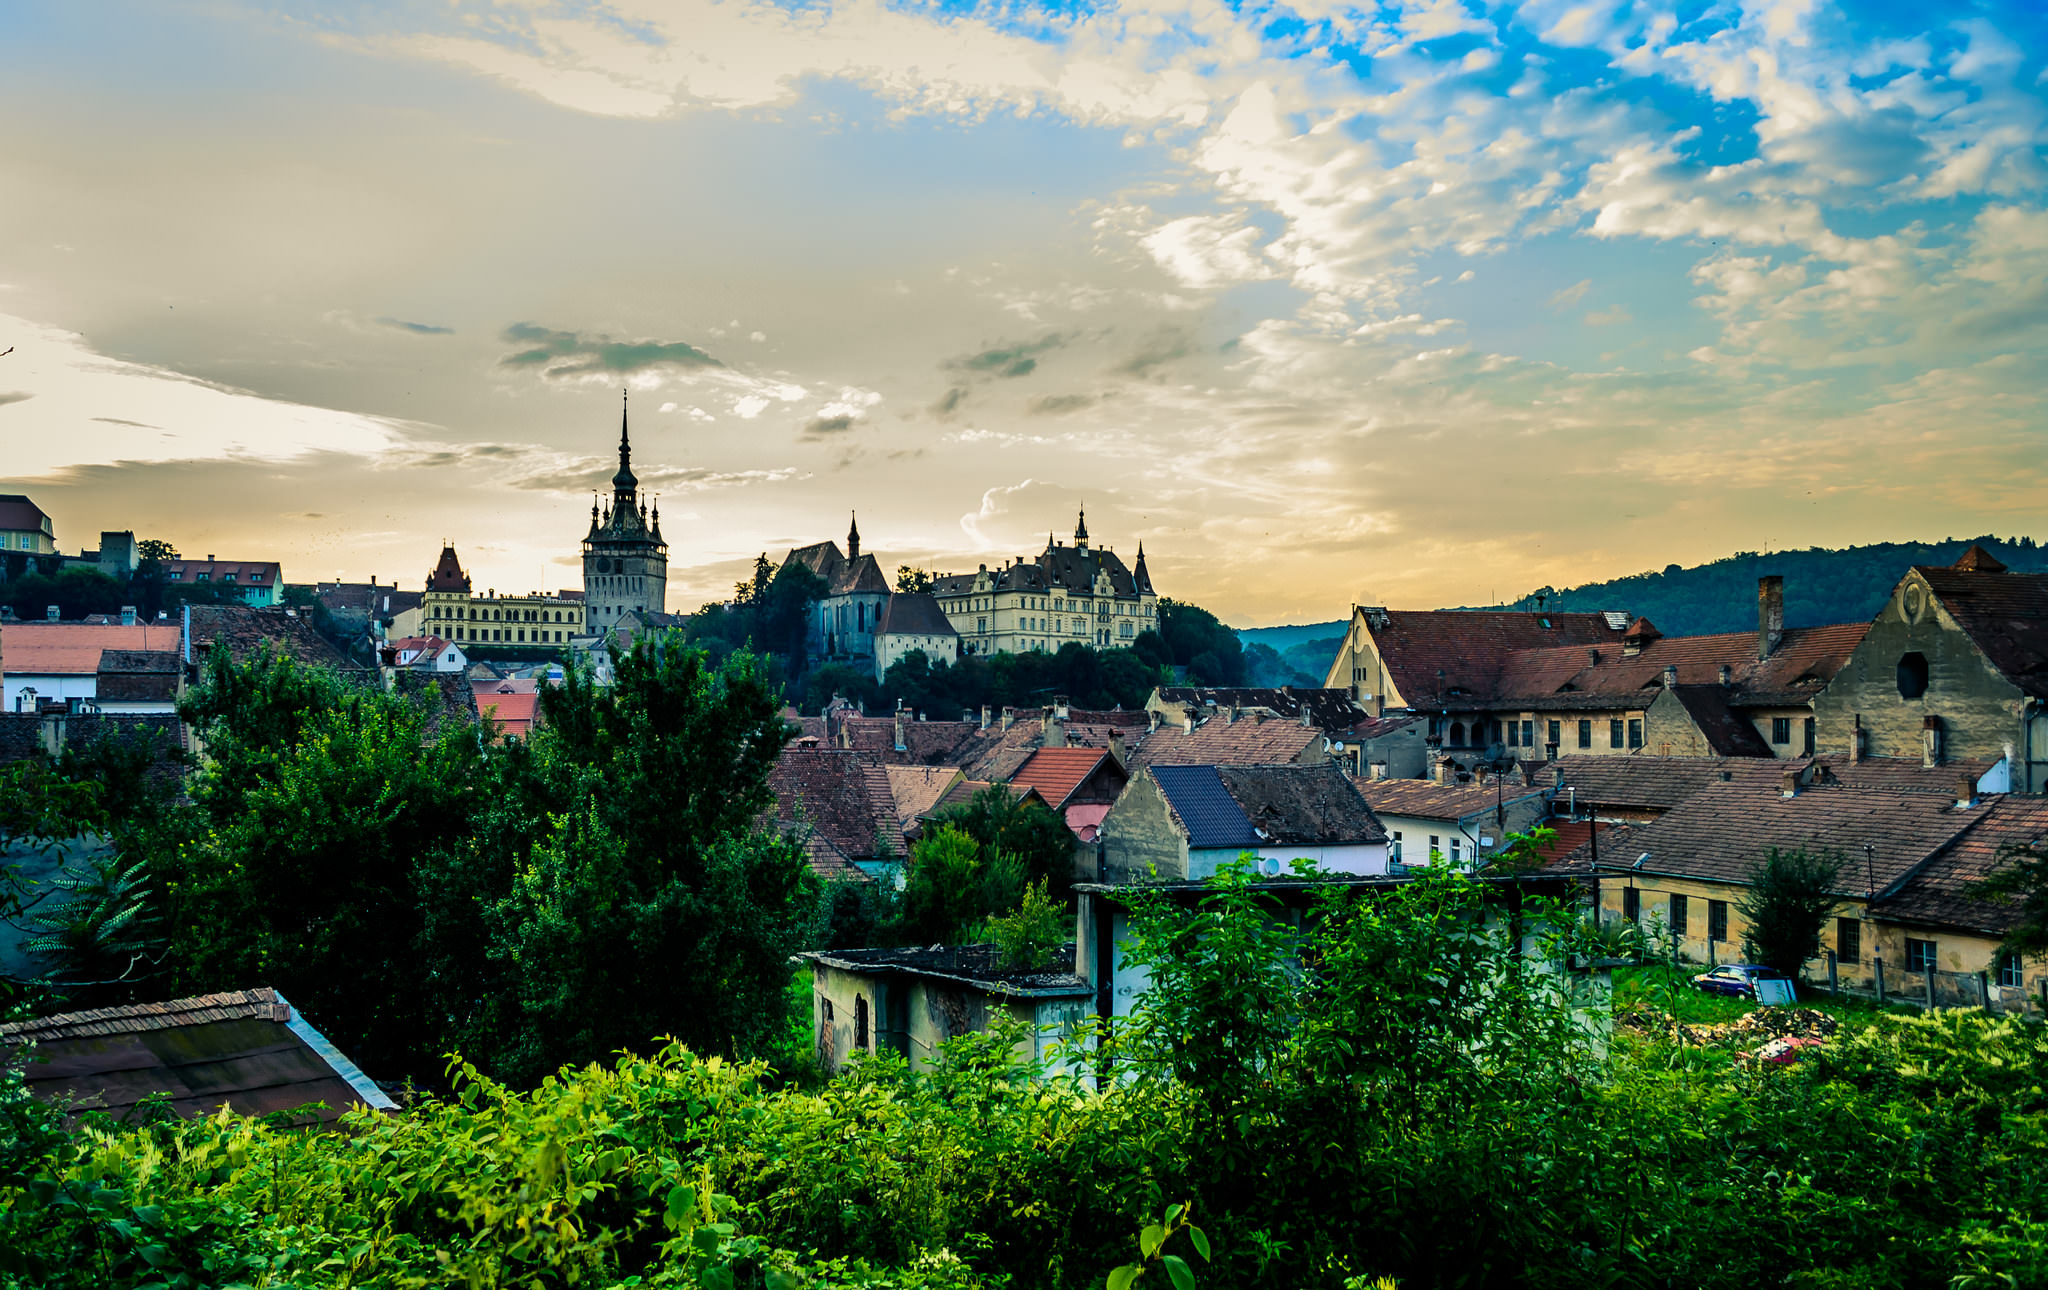 Sunset over the medieval city of Sighișoara, Romania (copyright:  creative commons )